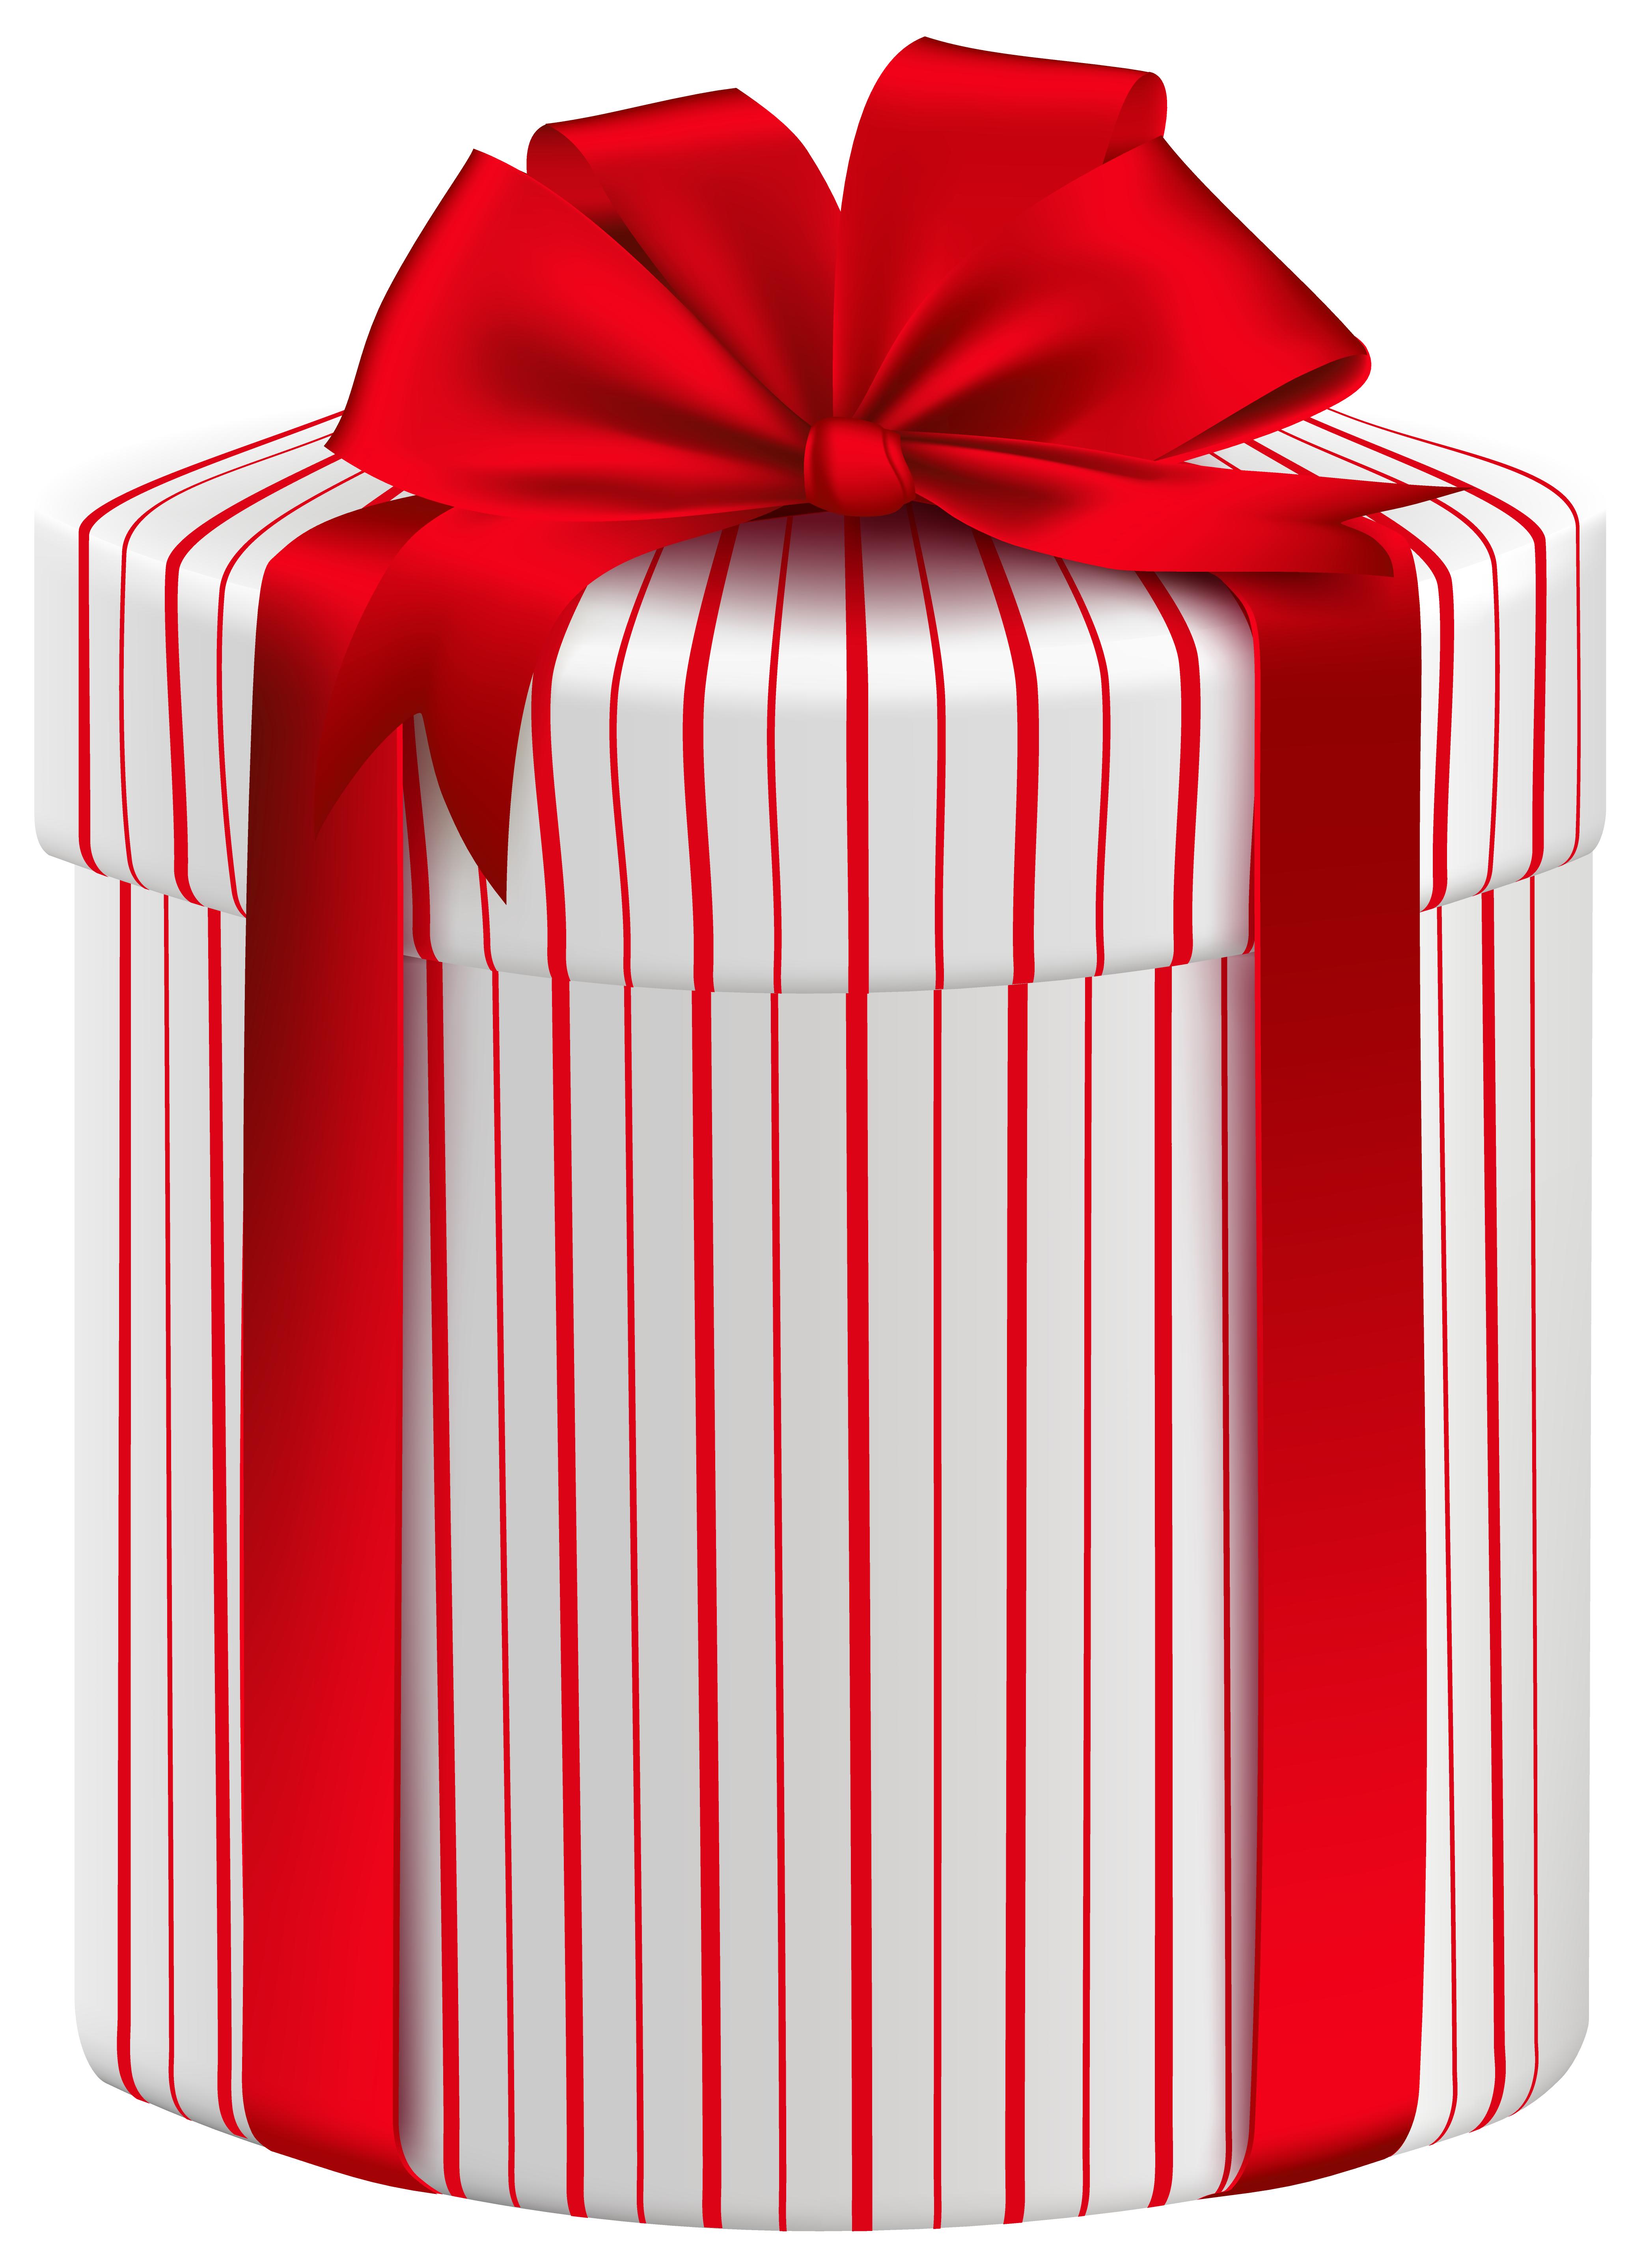 Large Gift Box With Red Bow Png Clipart Image Gallery Yopriceville High Quality Images And Transparent Png Free Large Gift Boxes Gifts Christmas Decoupage